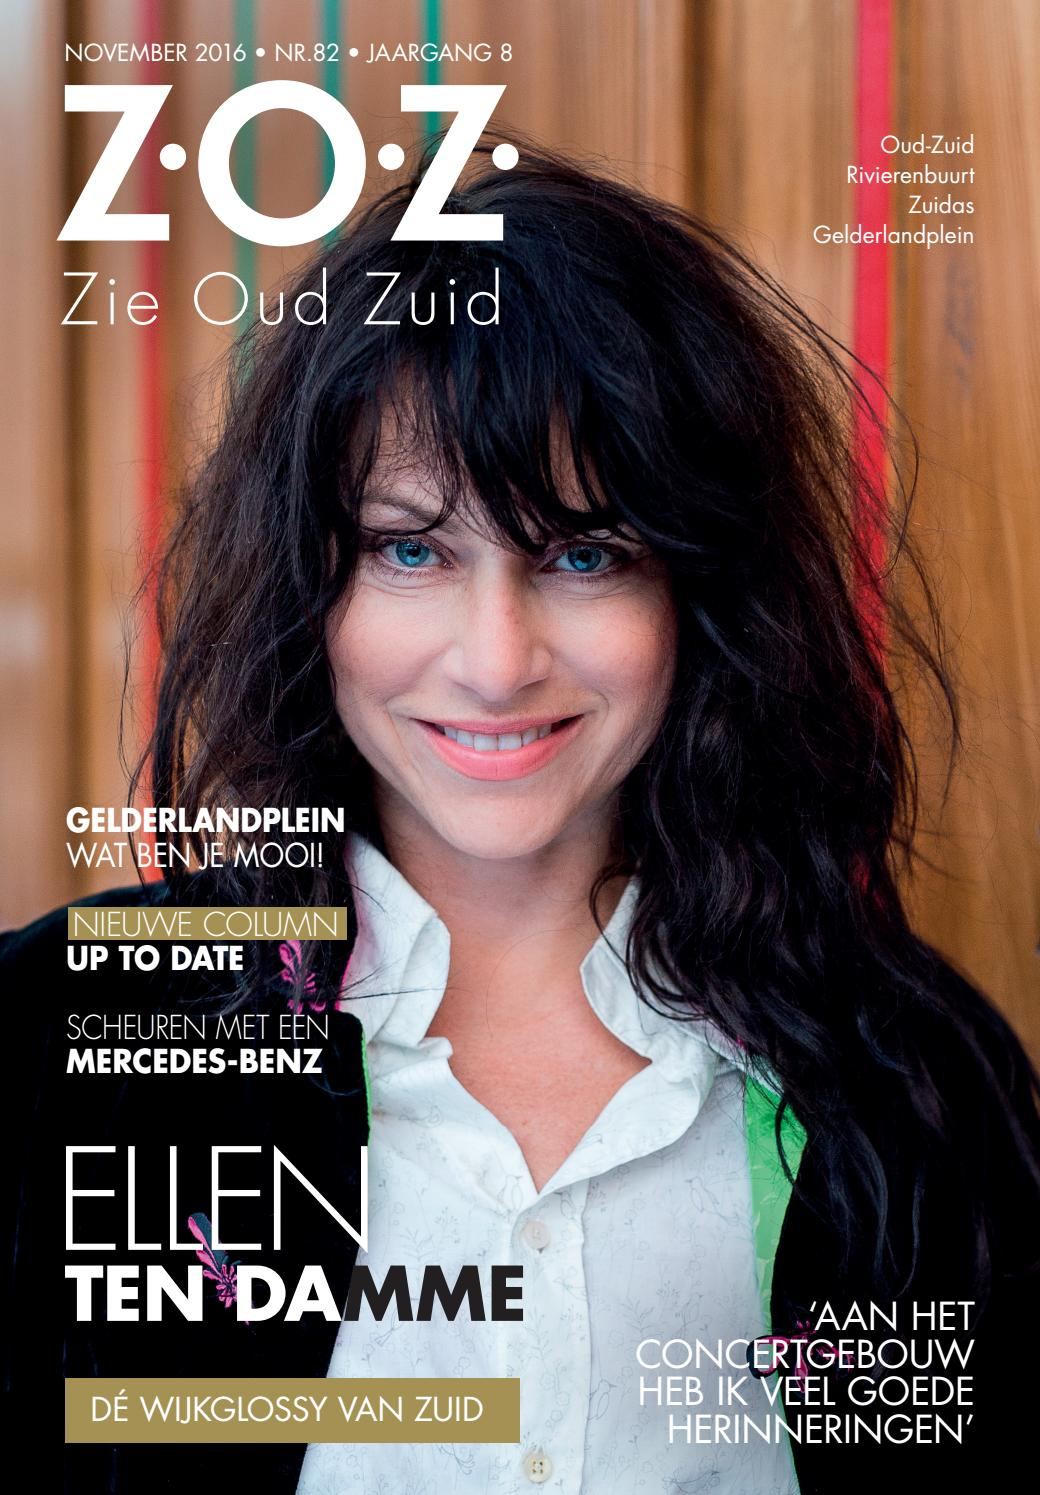 Ellen ten damme nieuwe single